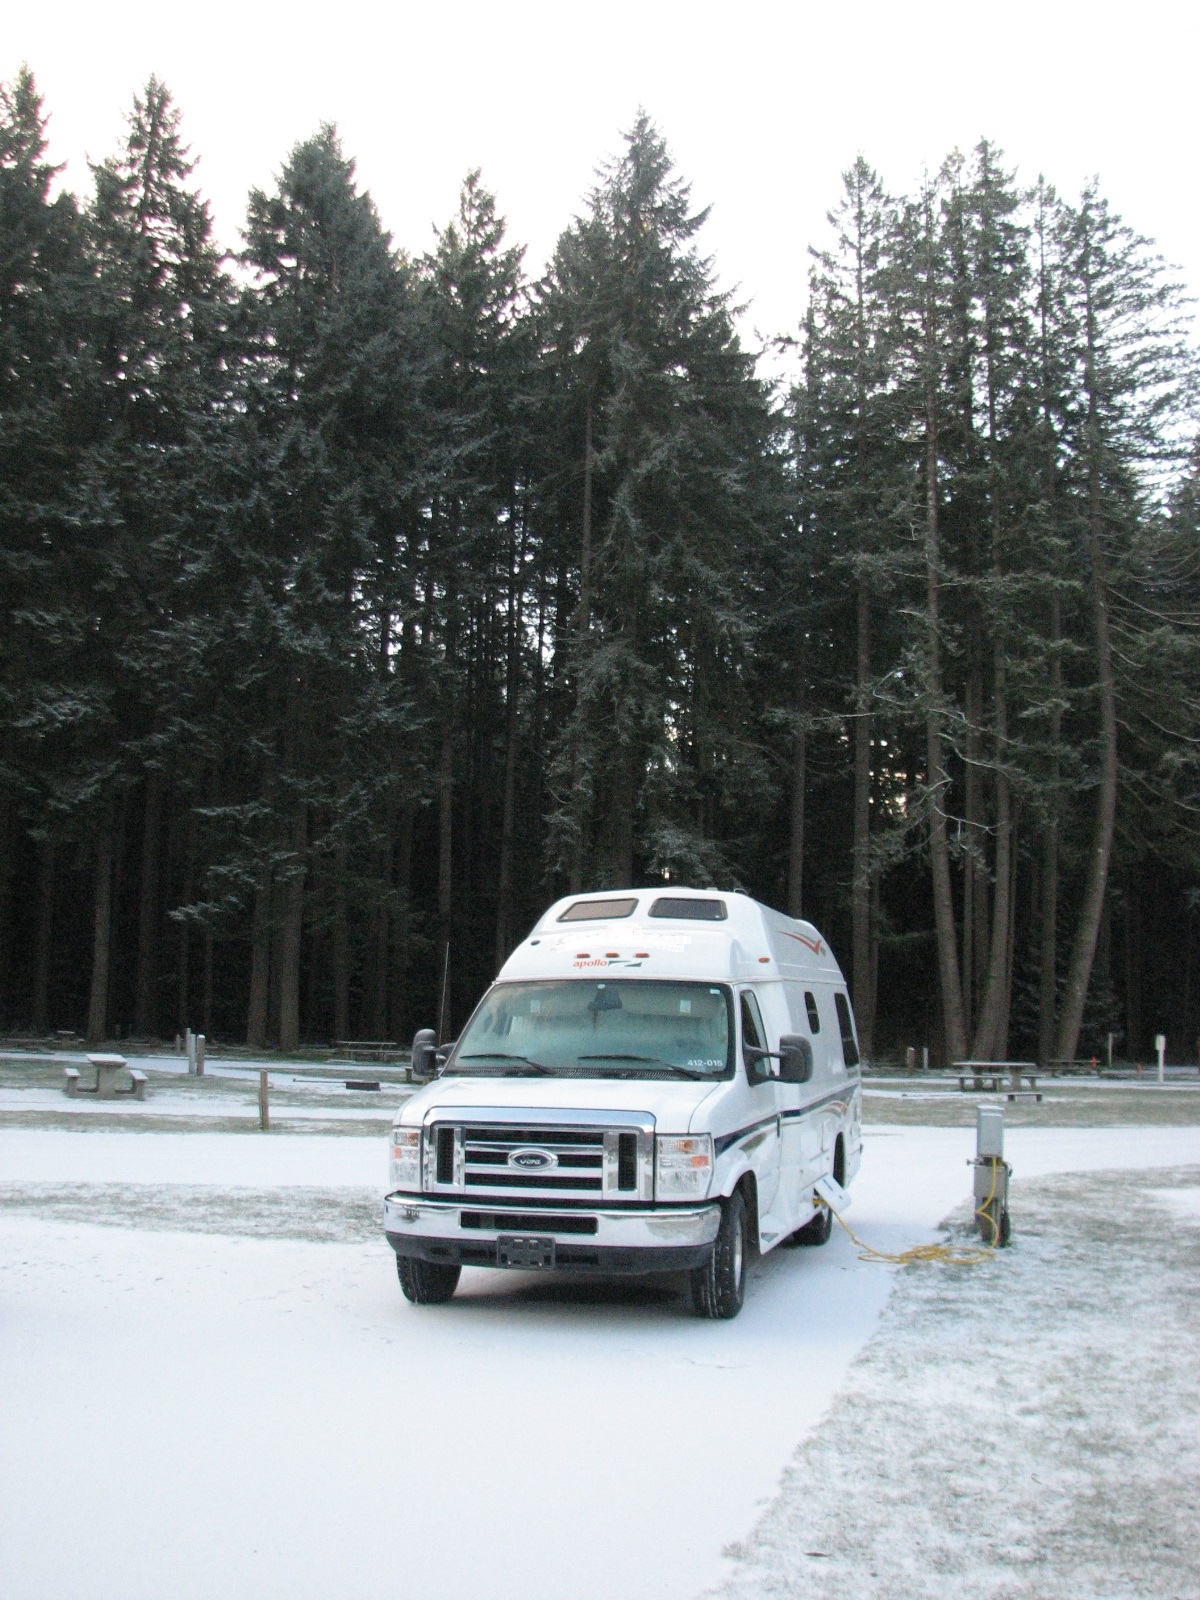 Wintering in Washington State